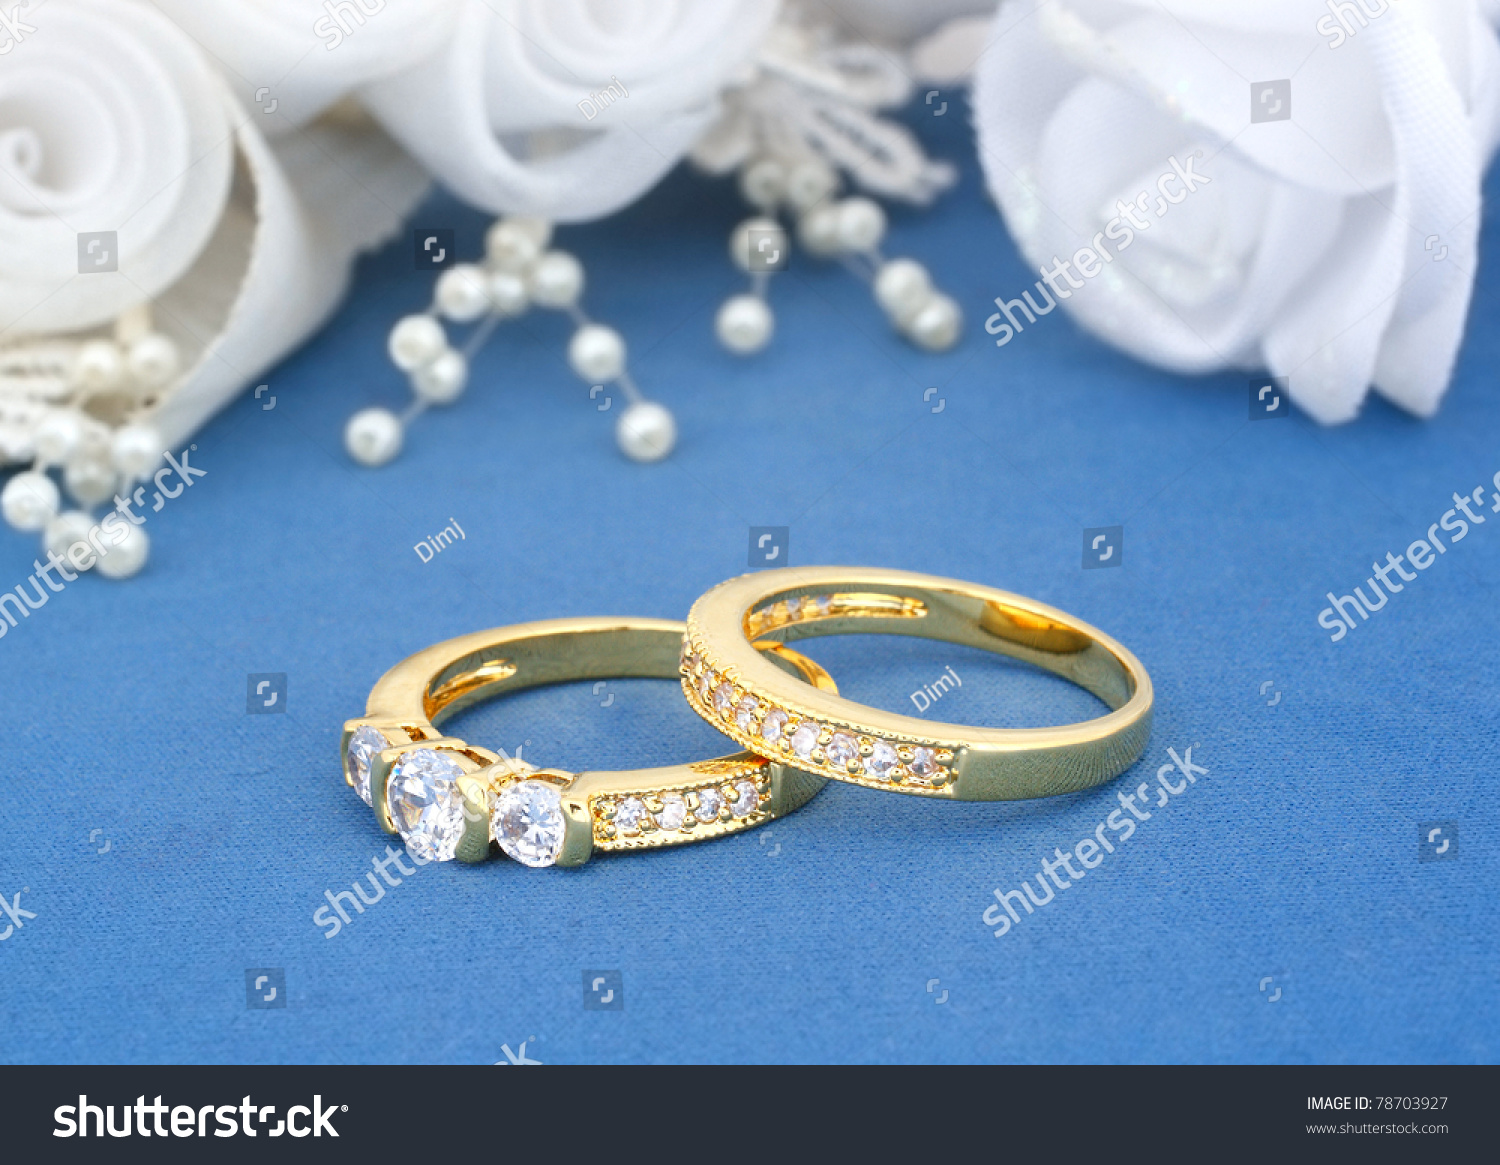 stock photo wedding rings on blue with flowers background blue wedding rings wedding rings on blue with flowers background